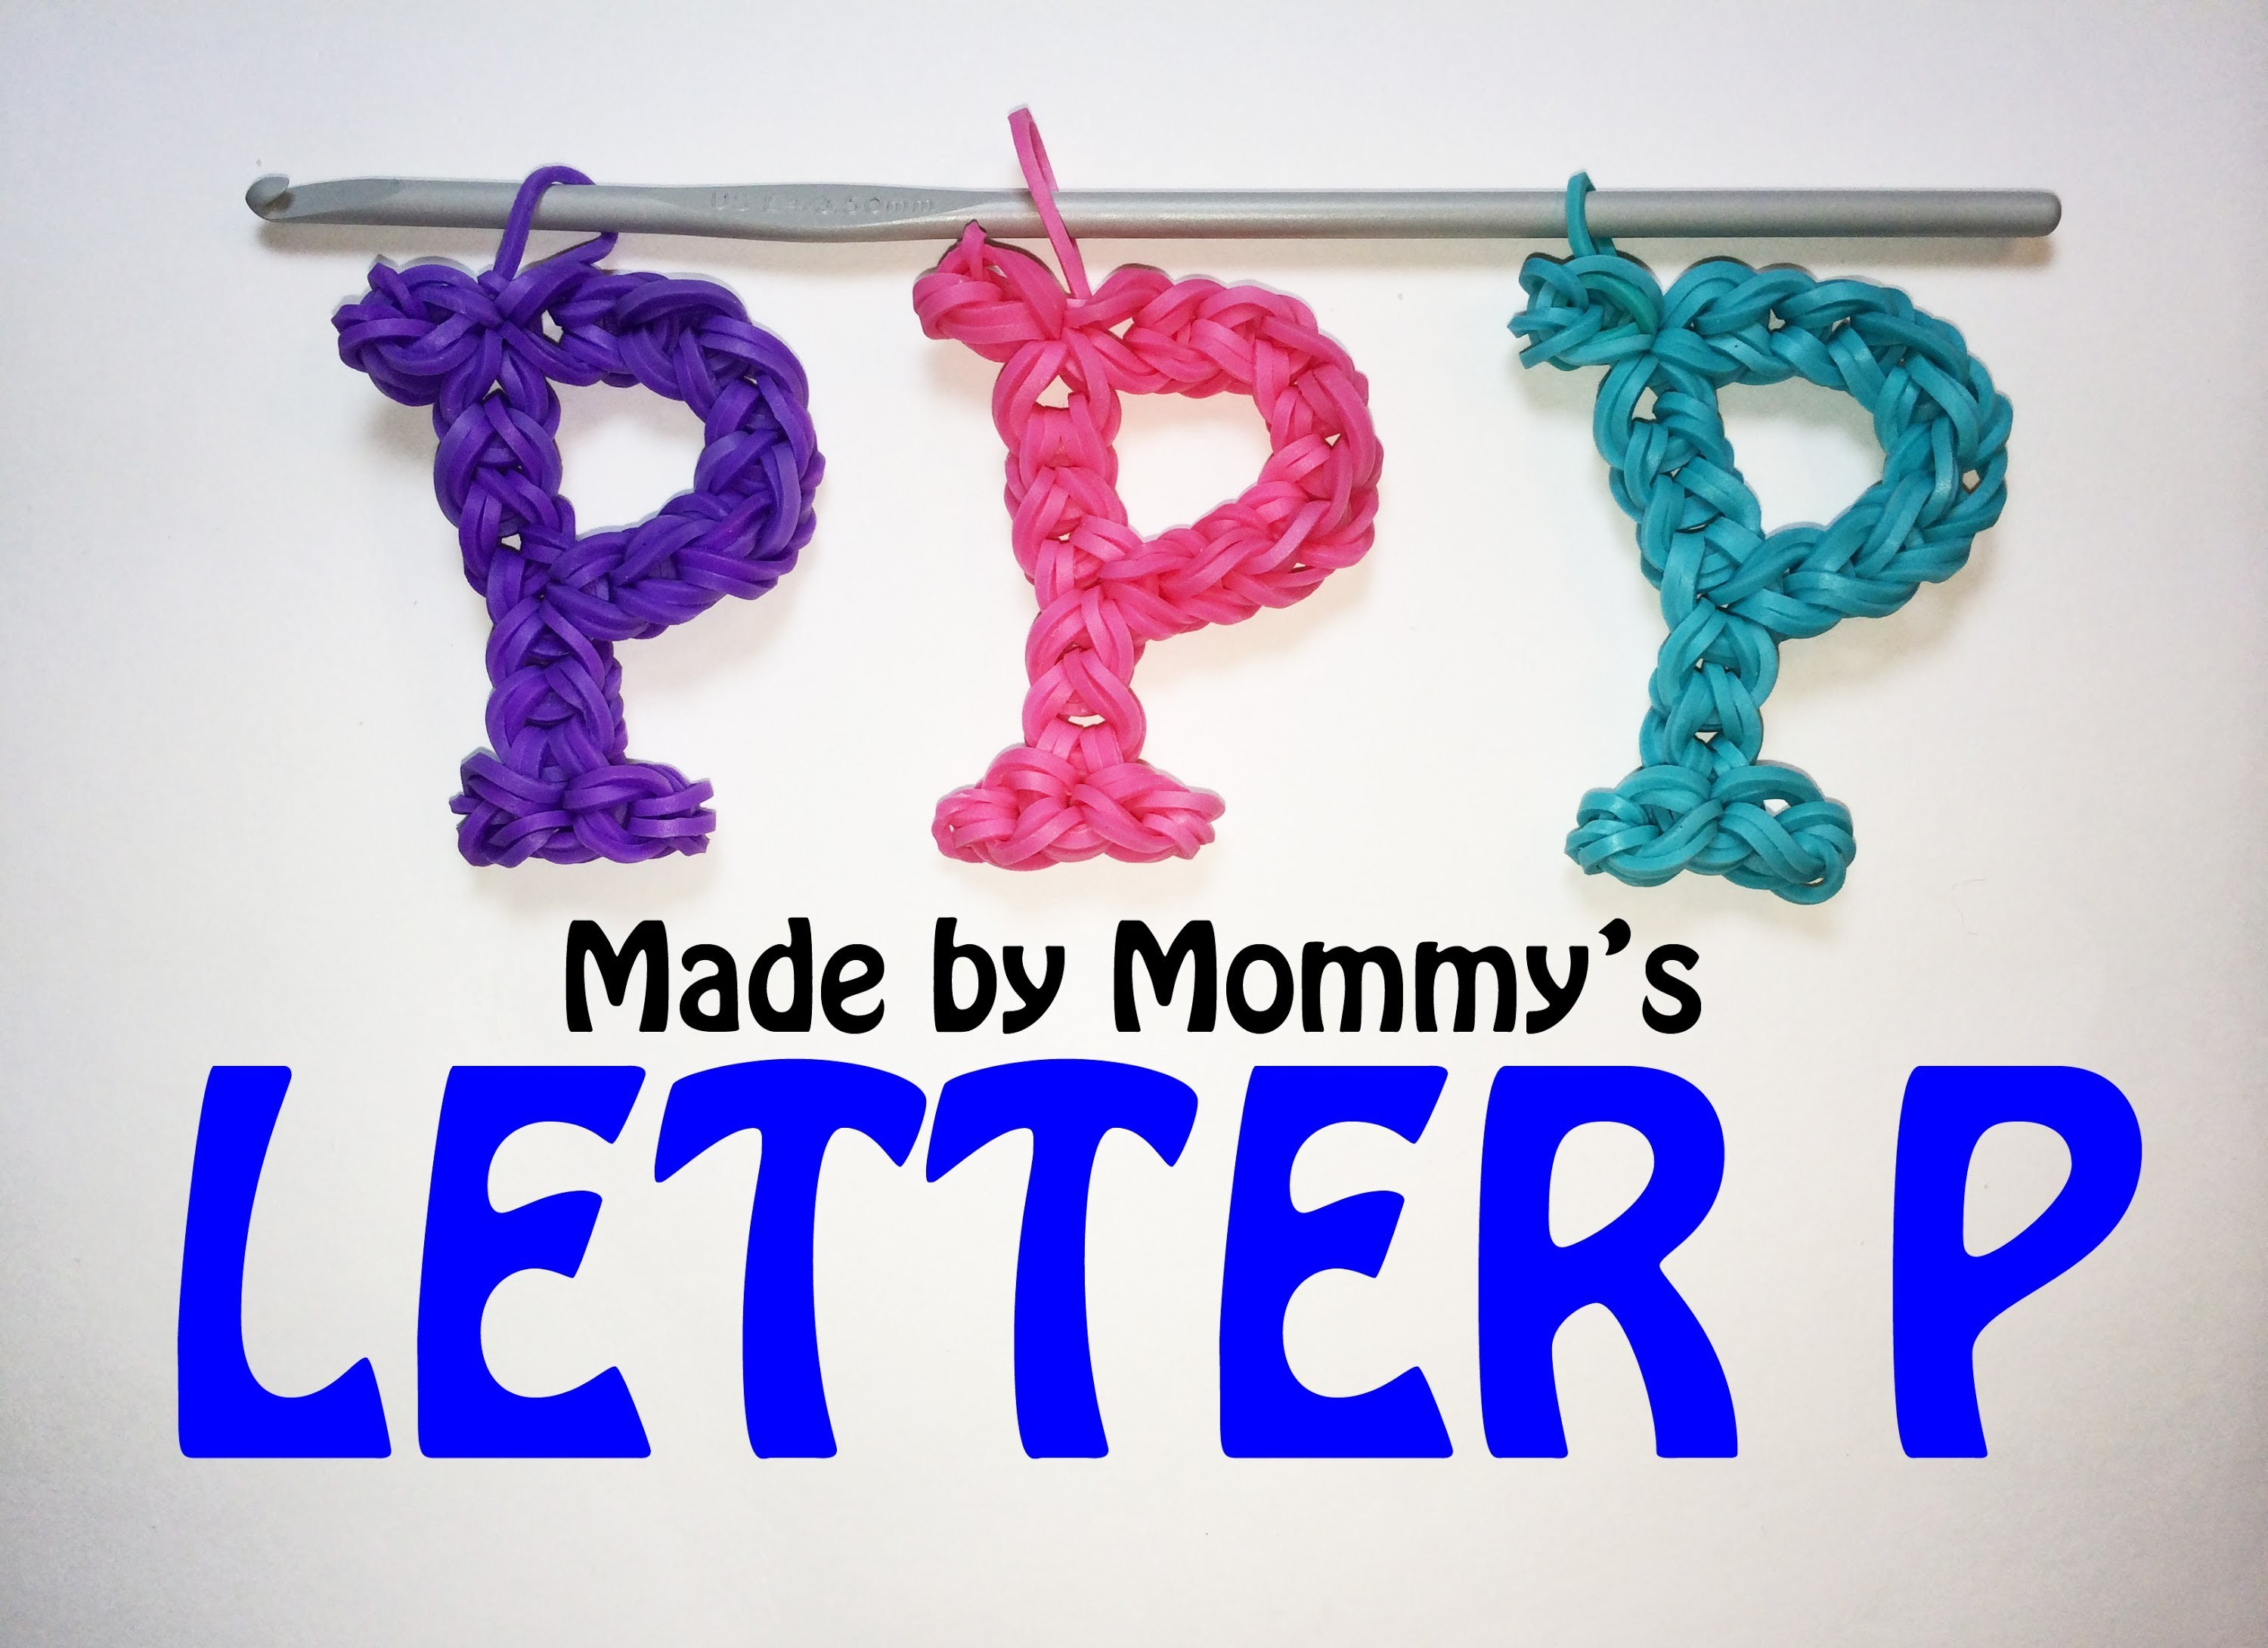 Rainbow Loom Letter P Charm Using Just the Hook